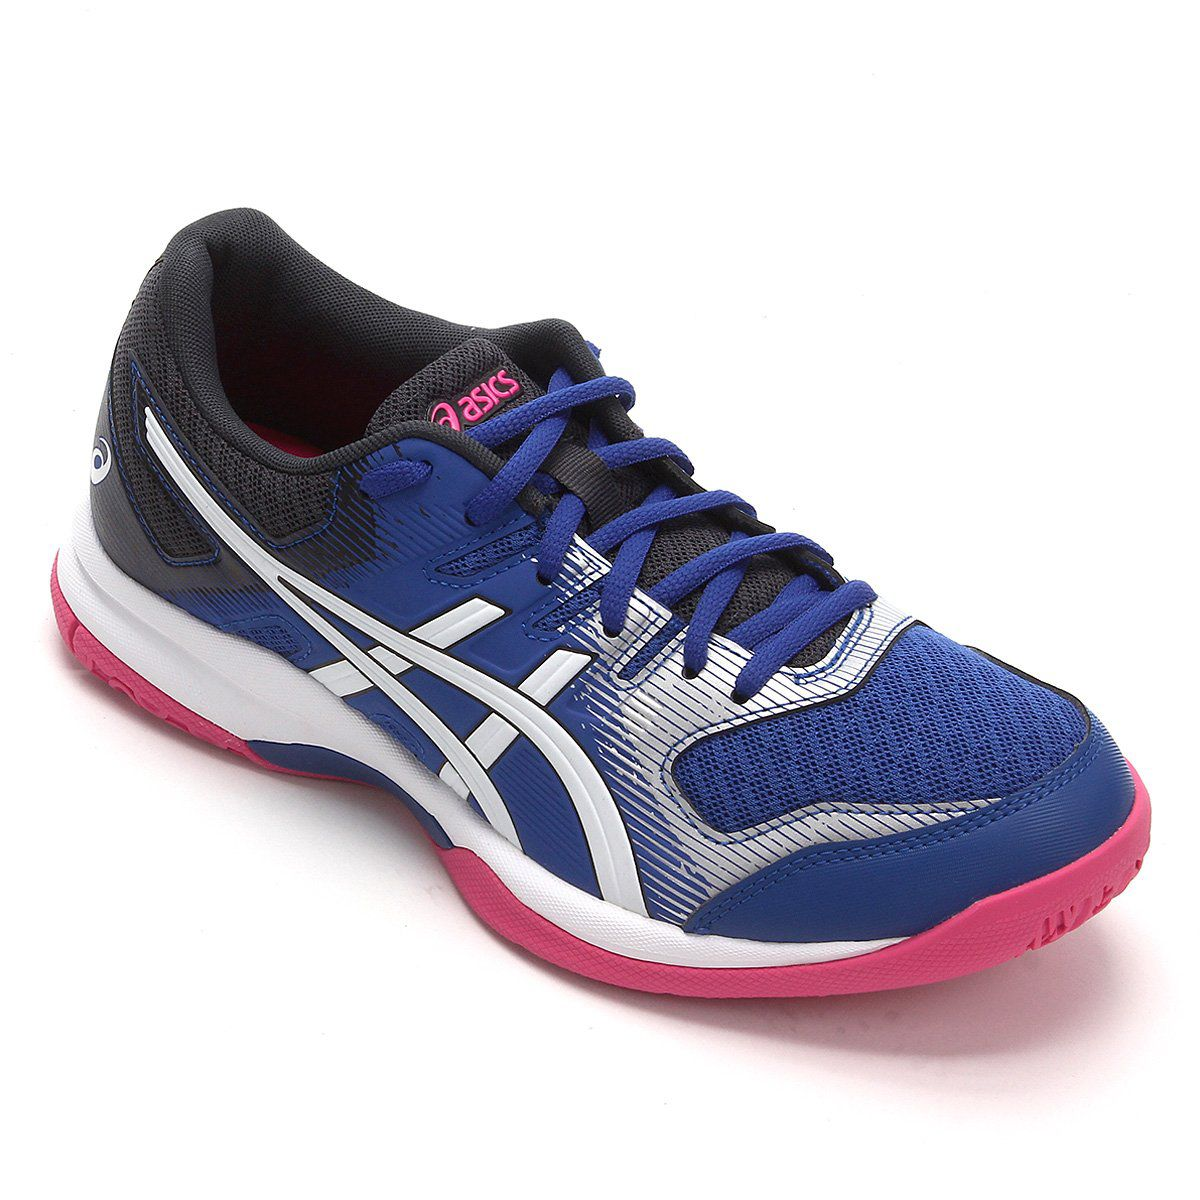 Tênis Asics Gel Rocket 9 - Asics Blue/White